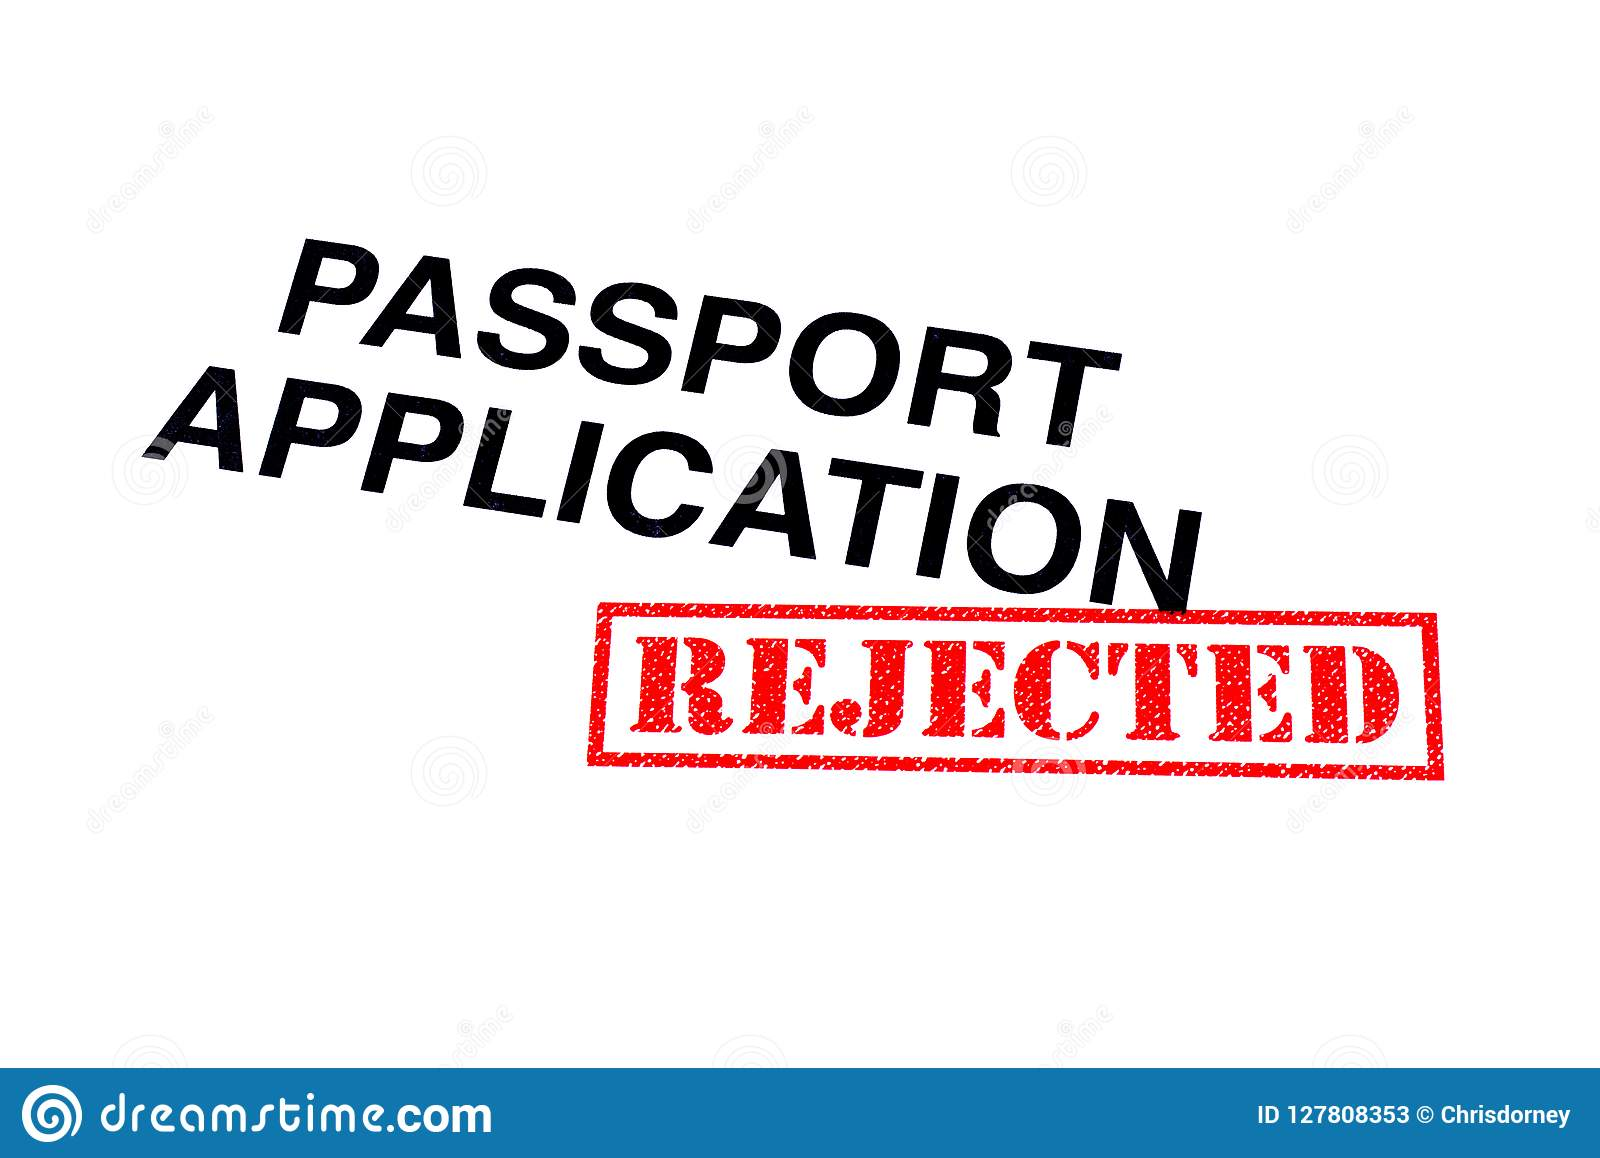 Passport Application Rejected Stock Image - Image of